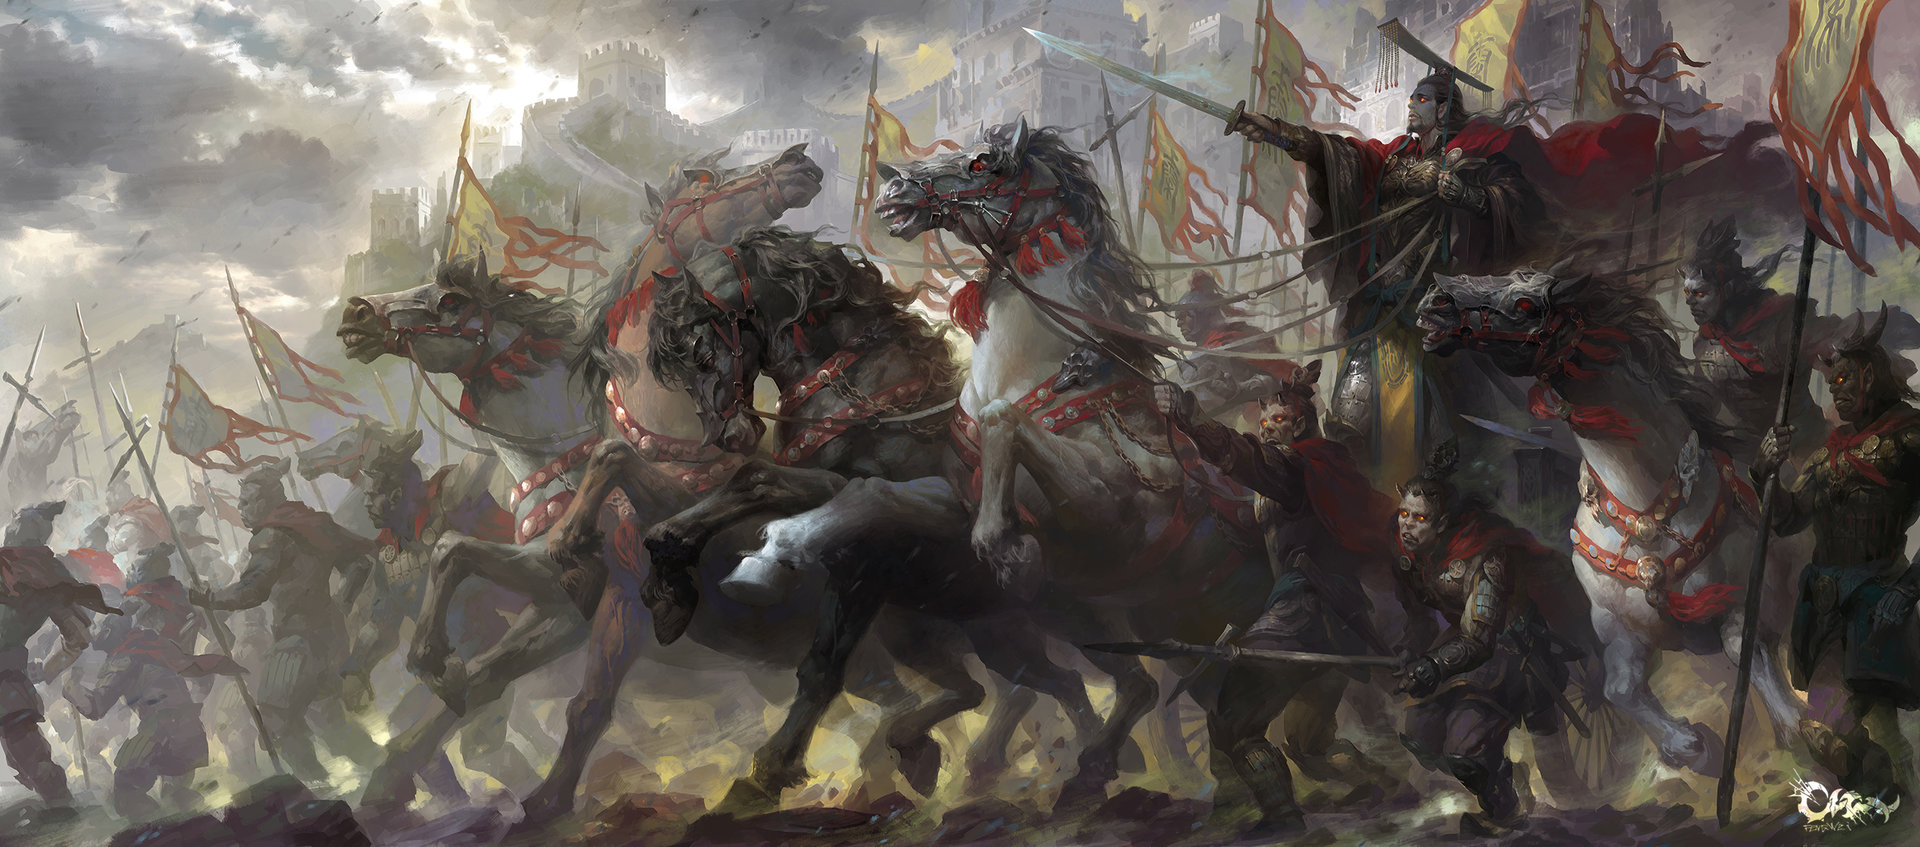 Wei Feng Digital Painting Illustration Prepare to battle warrior knight horses